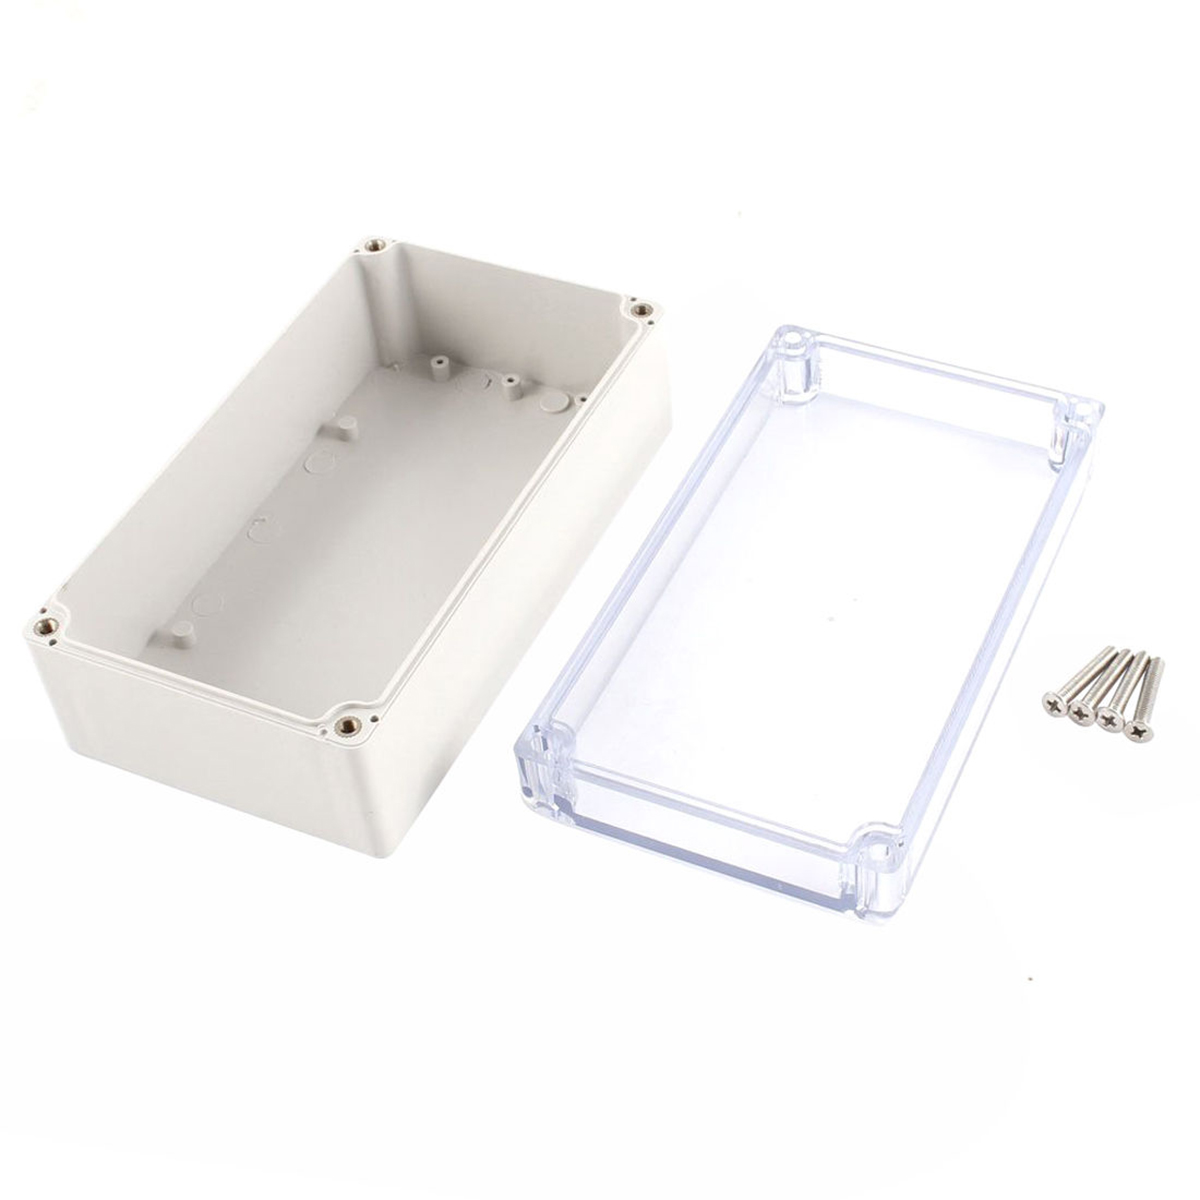 1pc Plastic Electronic Project Box Waterproof Clear Enclosure Instrument Case Cover 158mmx90mmx60mm with 4pcs Screws 1pc waterproof enclosure box plastic electronic project instrument case 200x120x75mm